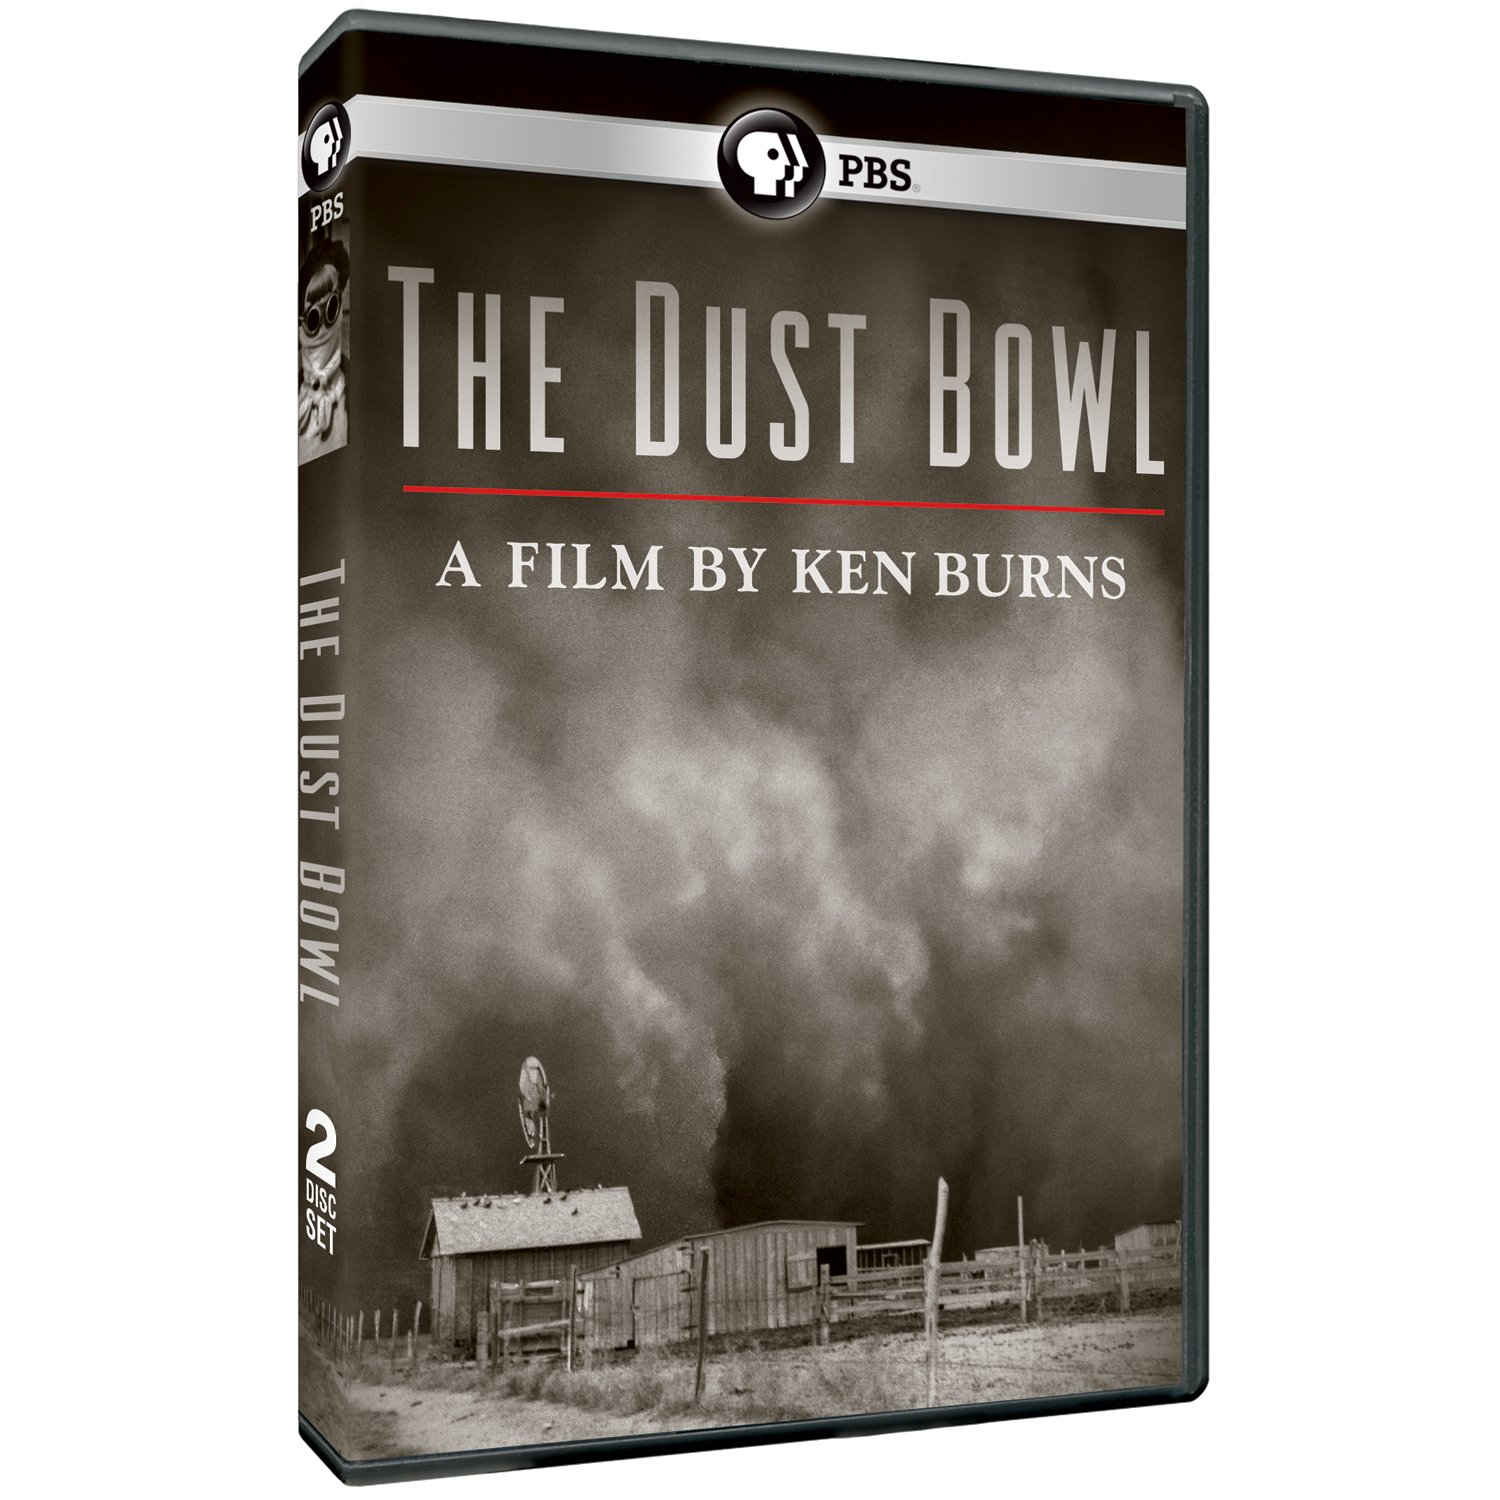 discussing ken burns documentary the dust bowl released in 2012